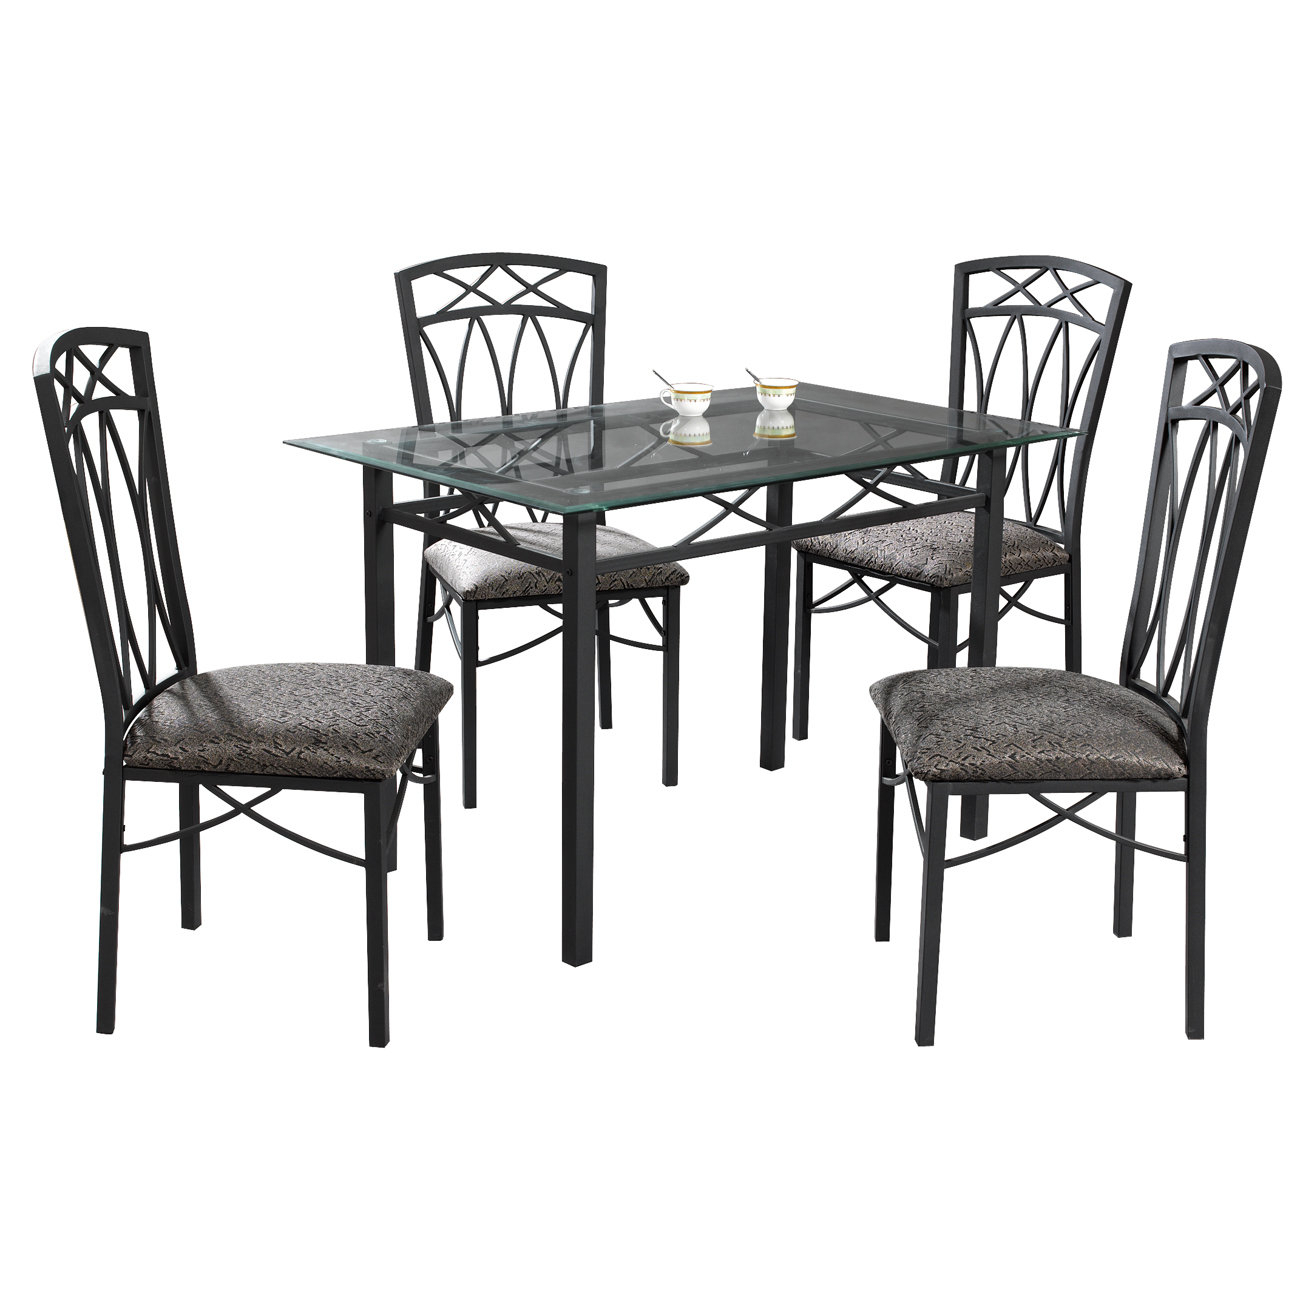 Queener 5 Piece Dining Set With Regard To Most Popular Queener 5 Piece Dining Sets (Photo 1 of 20)